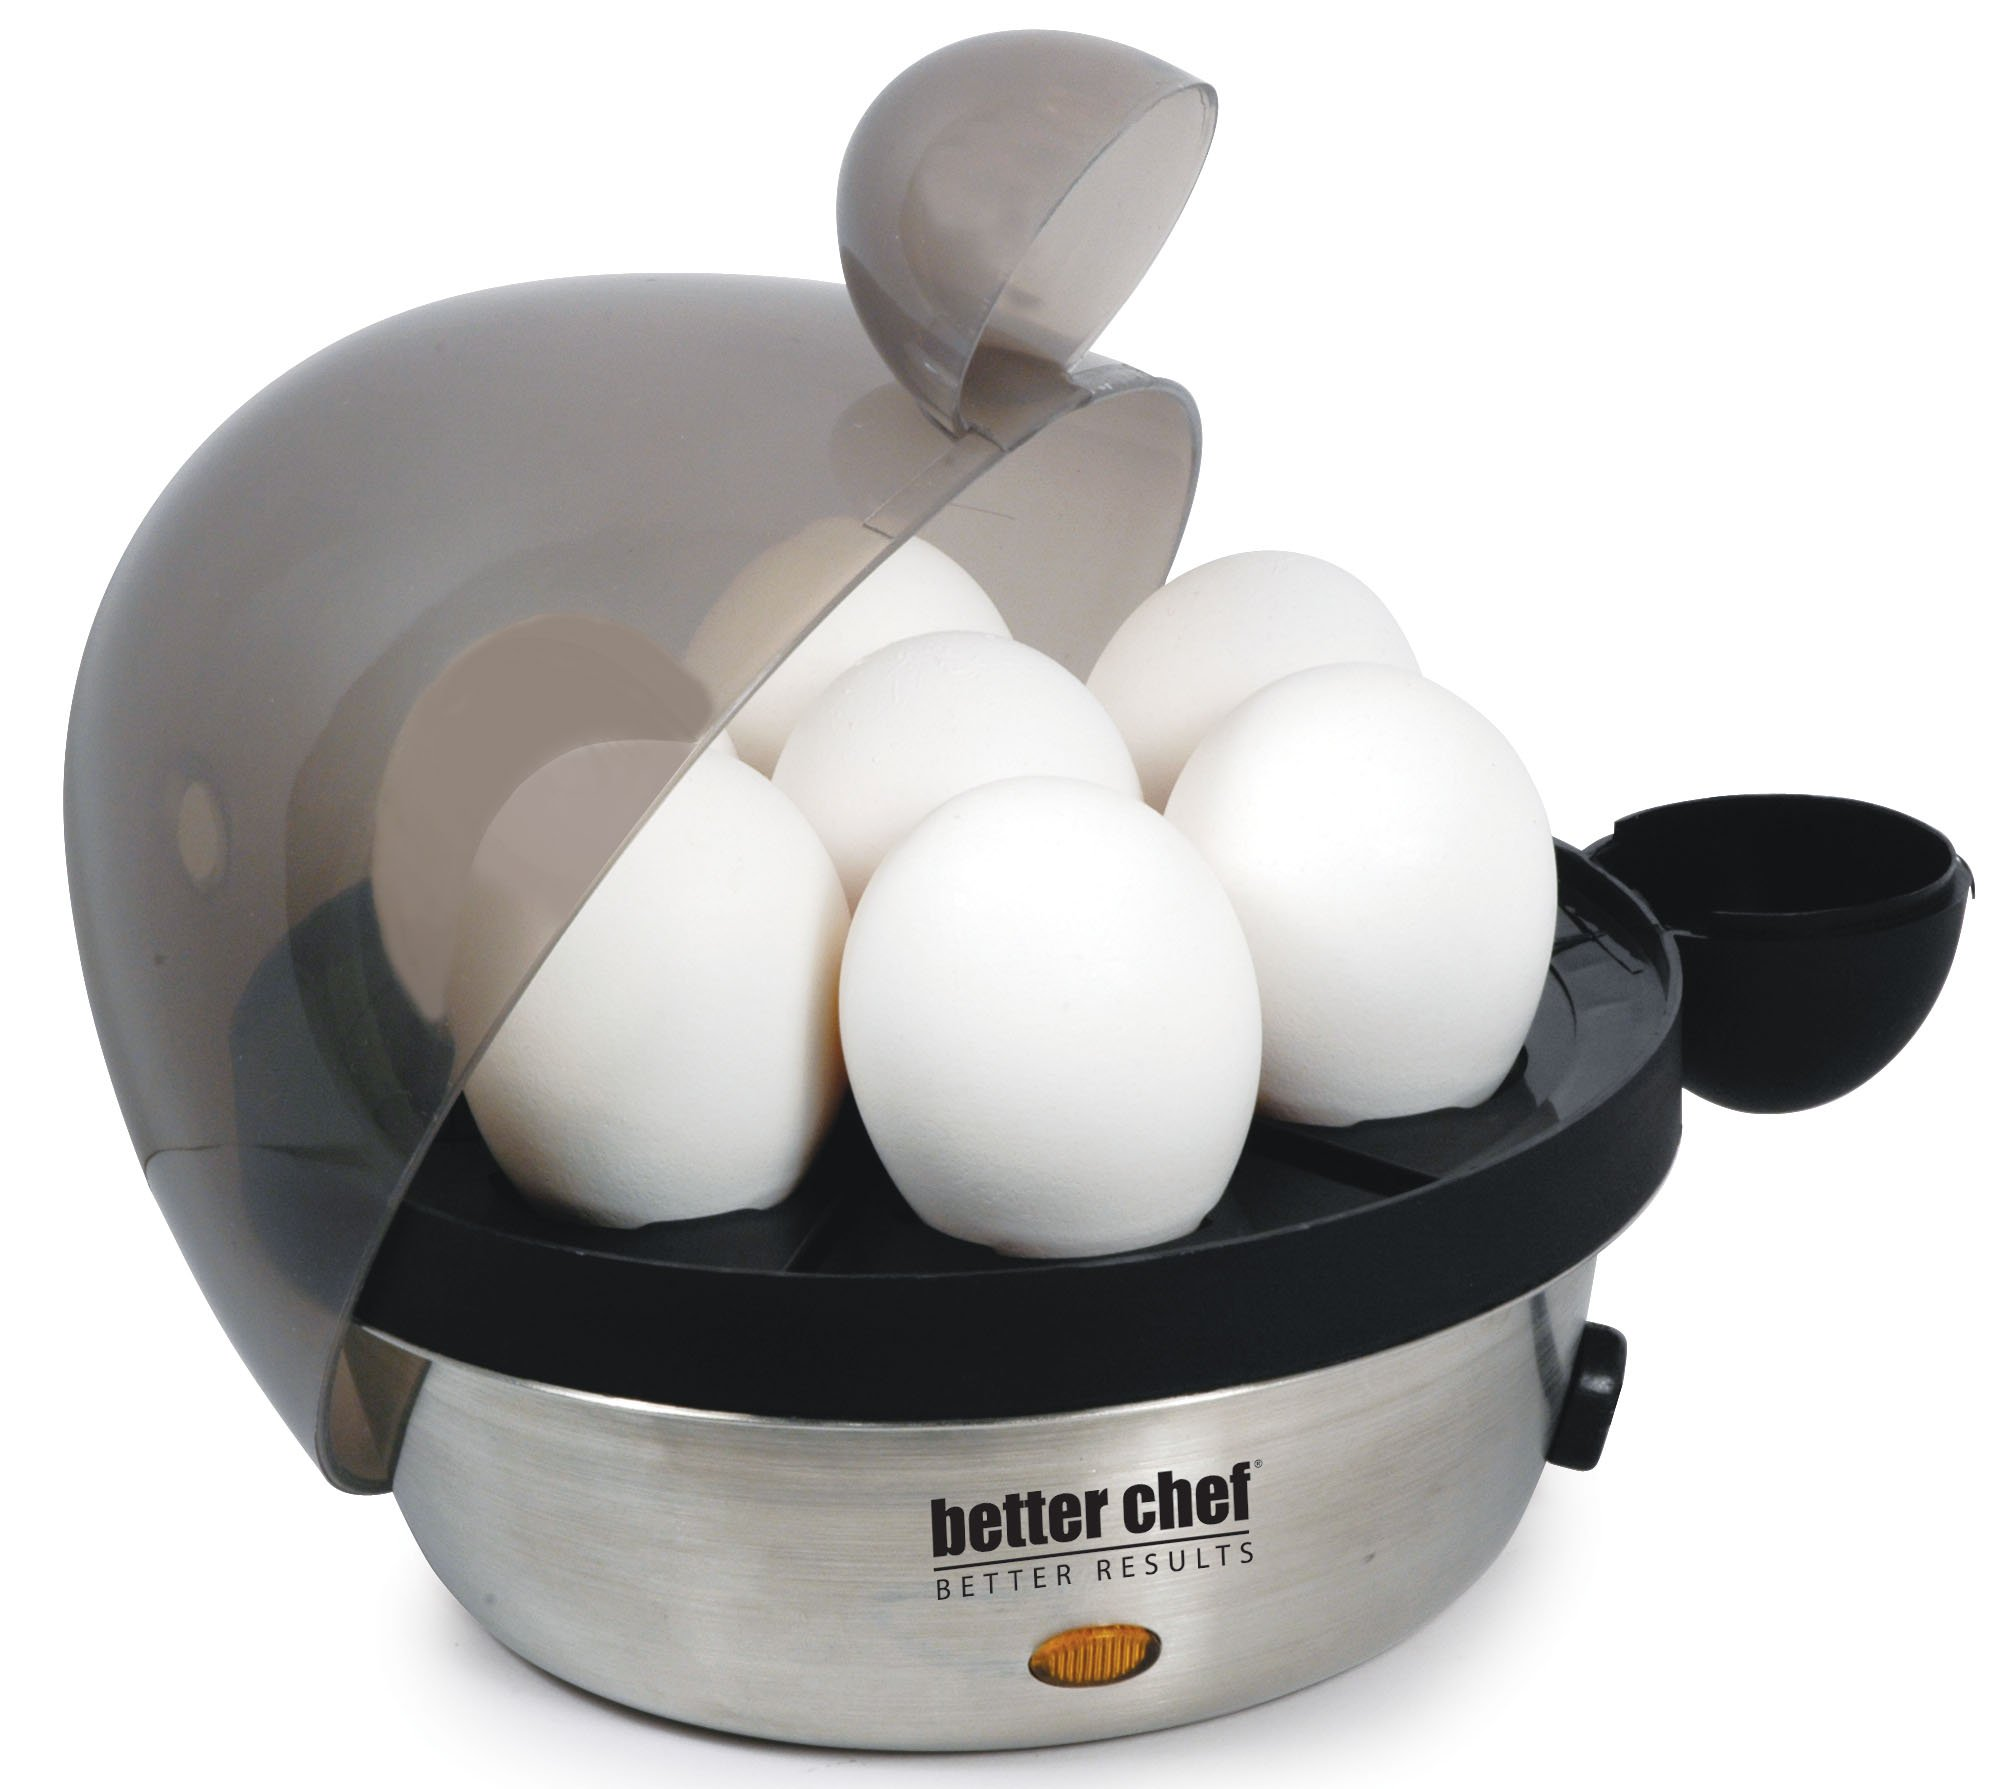 Better Chef IM-470S Stainless Steel Electric Egg Cooker | Boil up to 7 Eggs in a Matter of Minutes | Removable Cool Touch Tray | Durable Stainless Steel Base | See-Through Lid by Better Chef